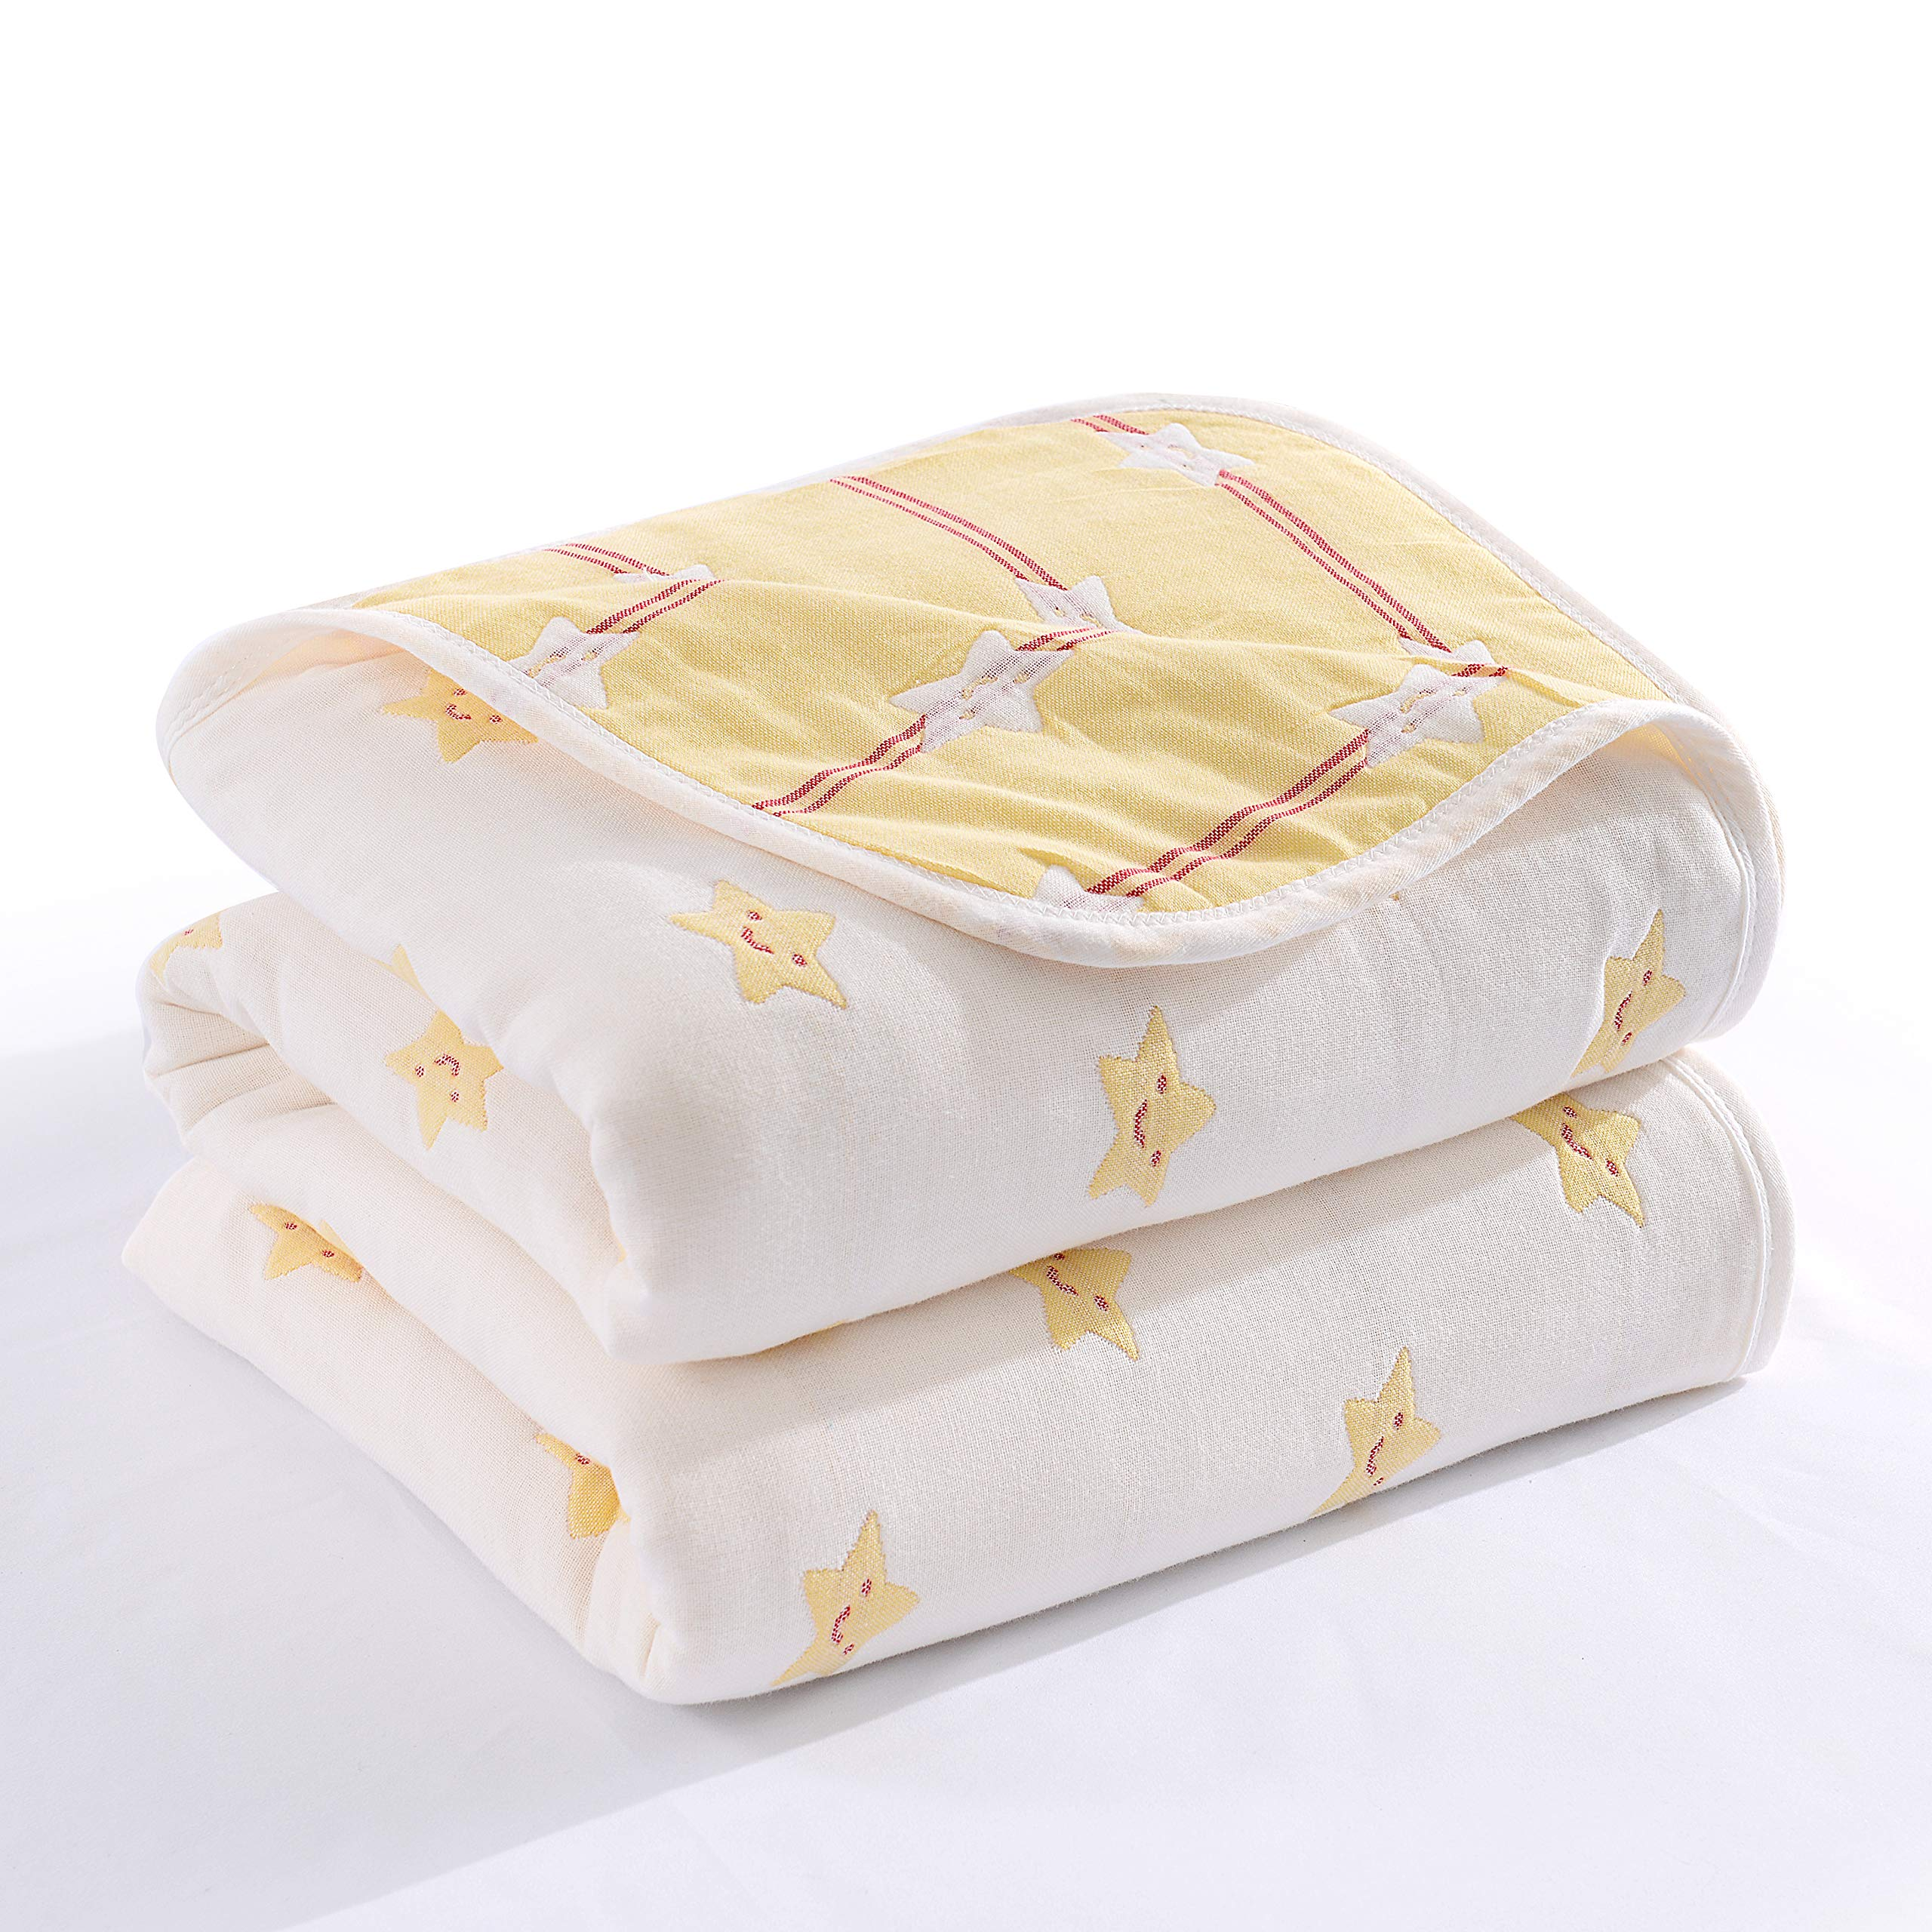 Futtle Cute Star 6 Layer Muslin Cotton Bed Blanket Cozy Soft Breathable Reversible Throw Blanket Coverlet Bedding Gift for Sofa Couch Women Adult (2, 79''X94'')